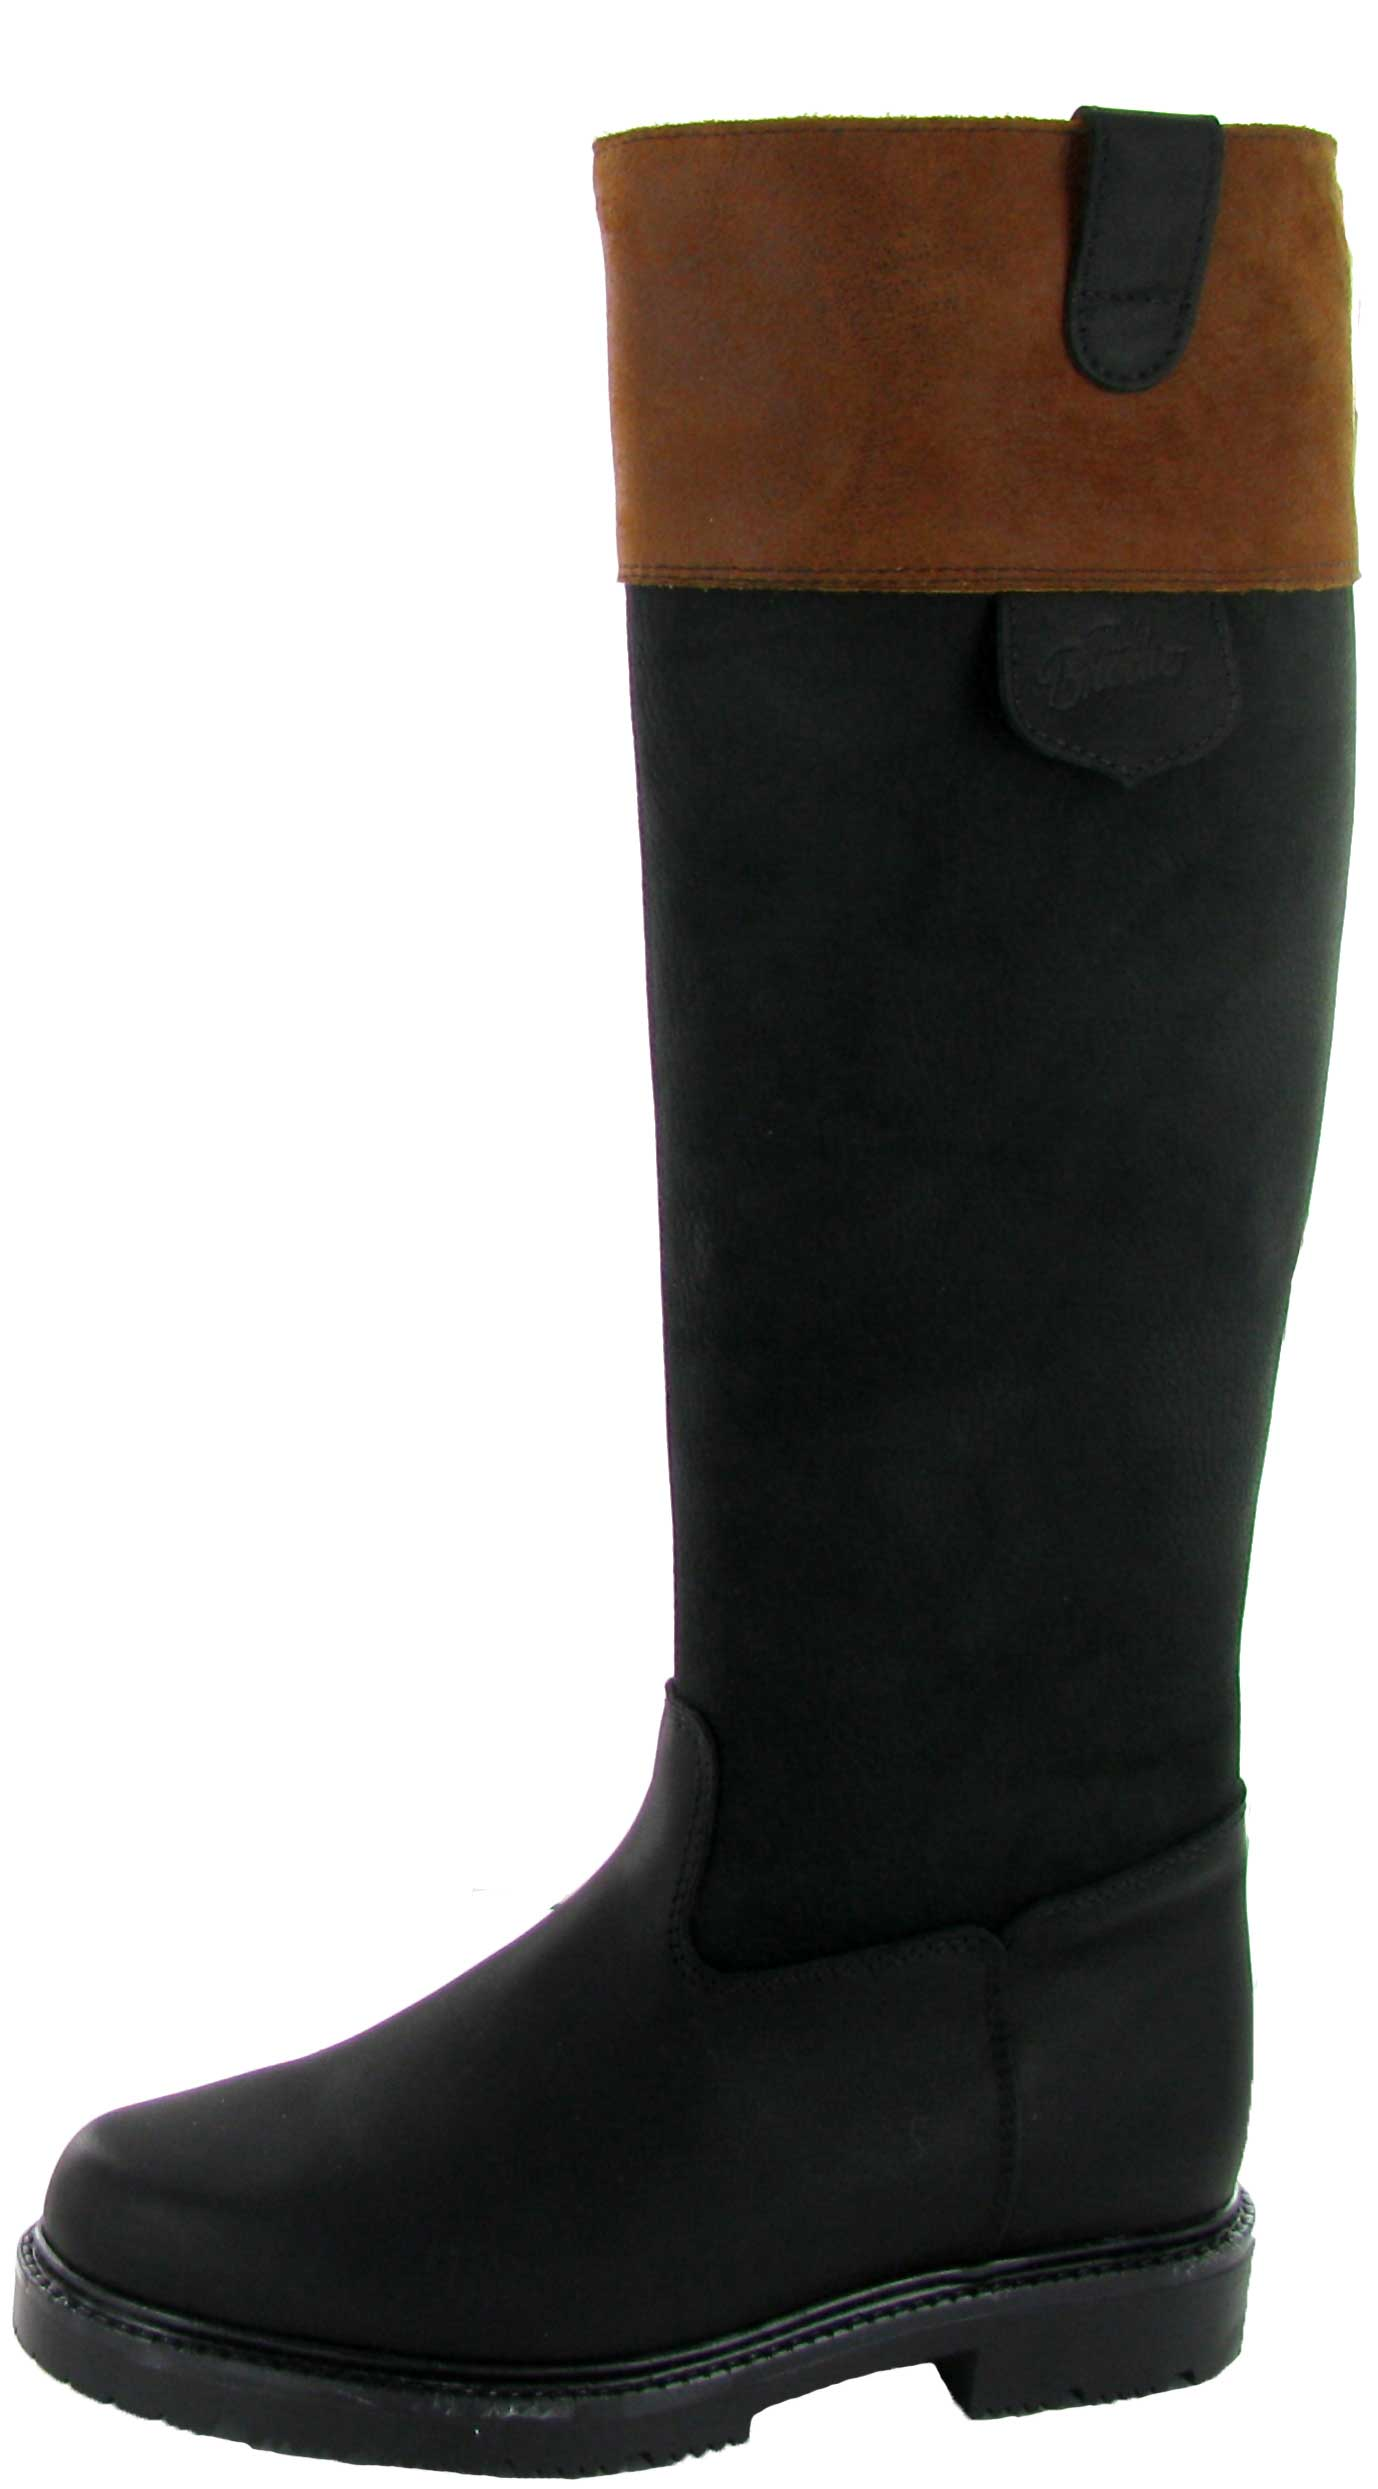 Paul Brodie Tall Pull-On All Leather Boot with Brown Cuff